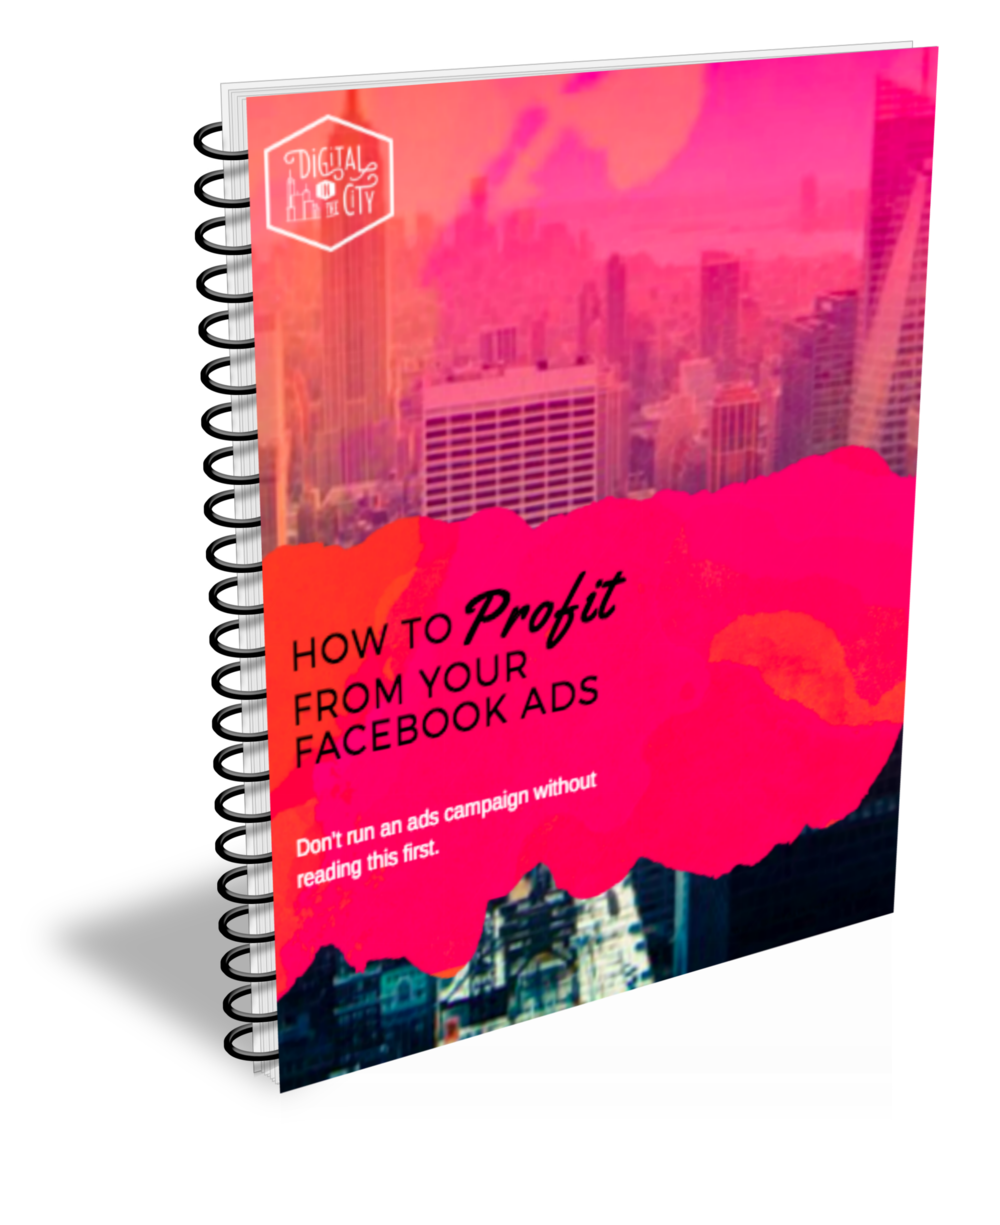 How To Profit From Your Facebook Ads